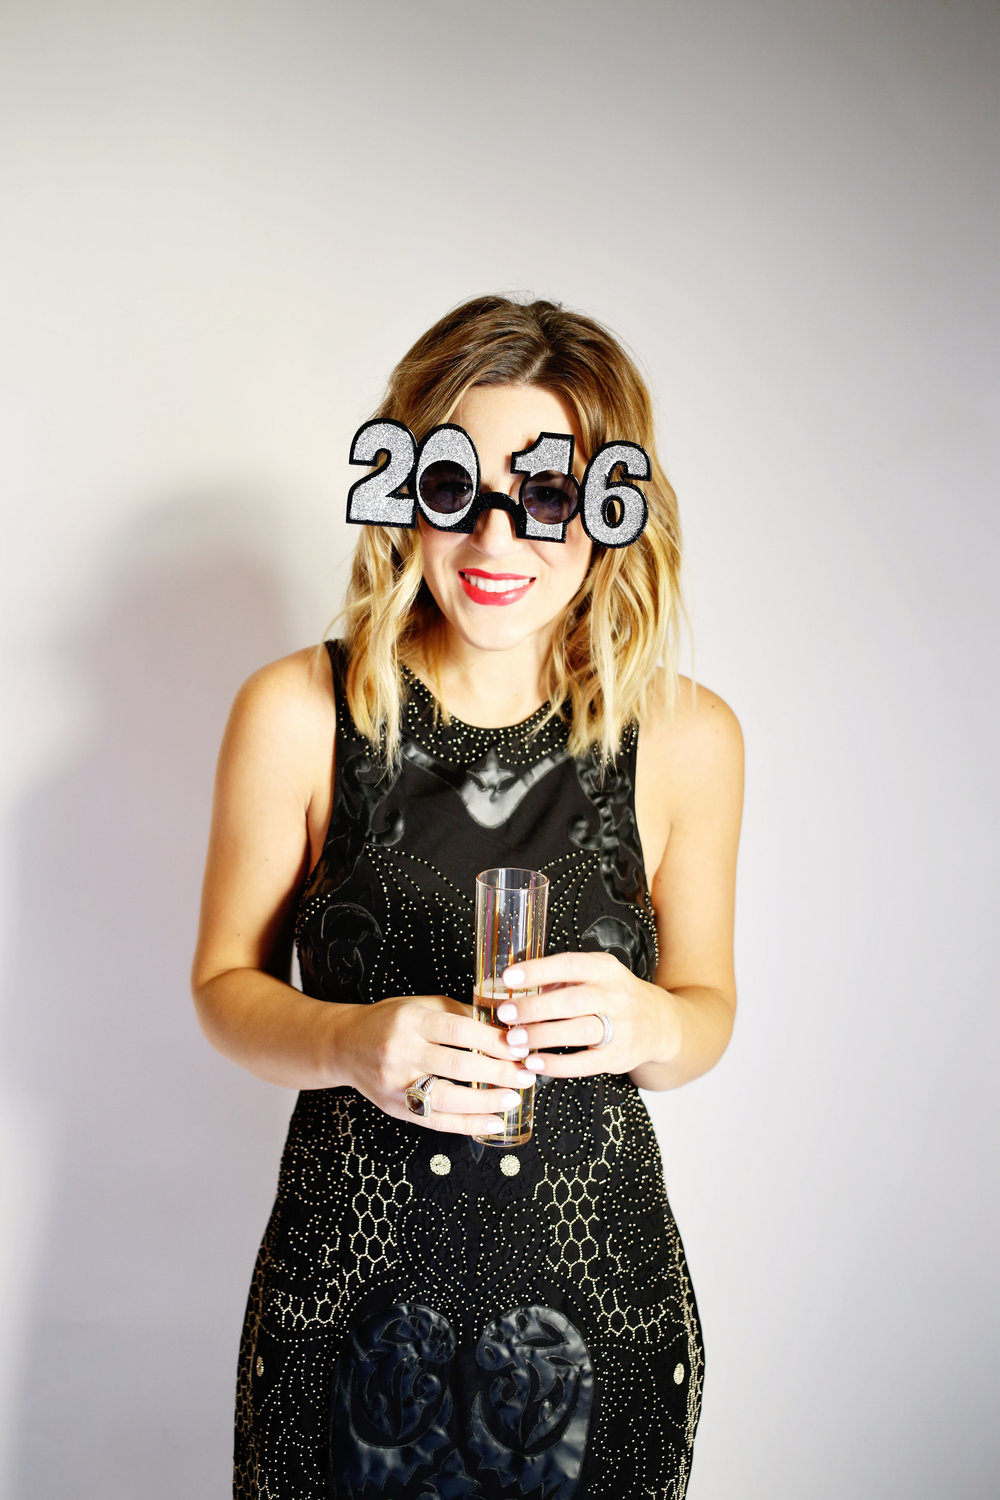 New years eve outfit by yoana baraschi 3.jpg